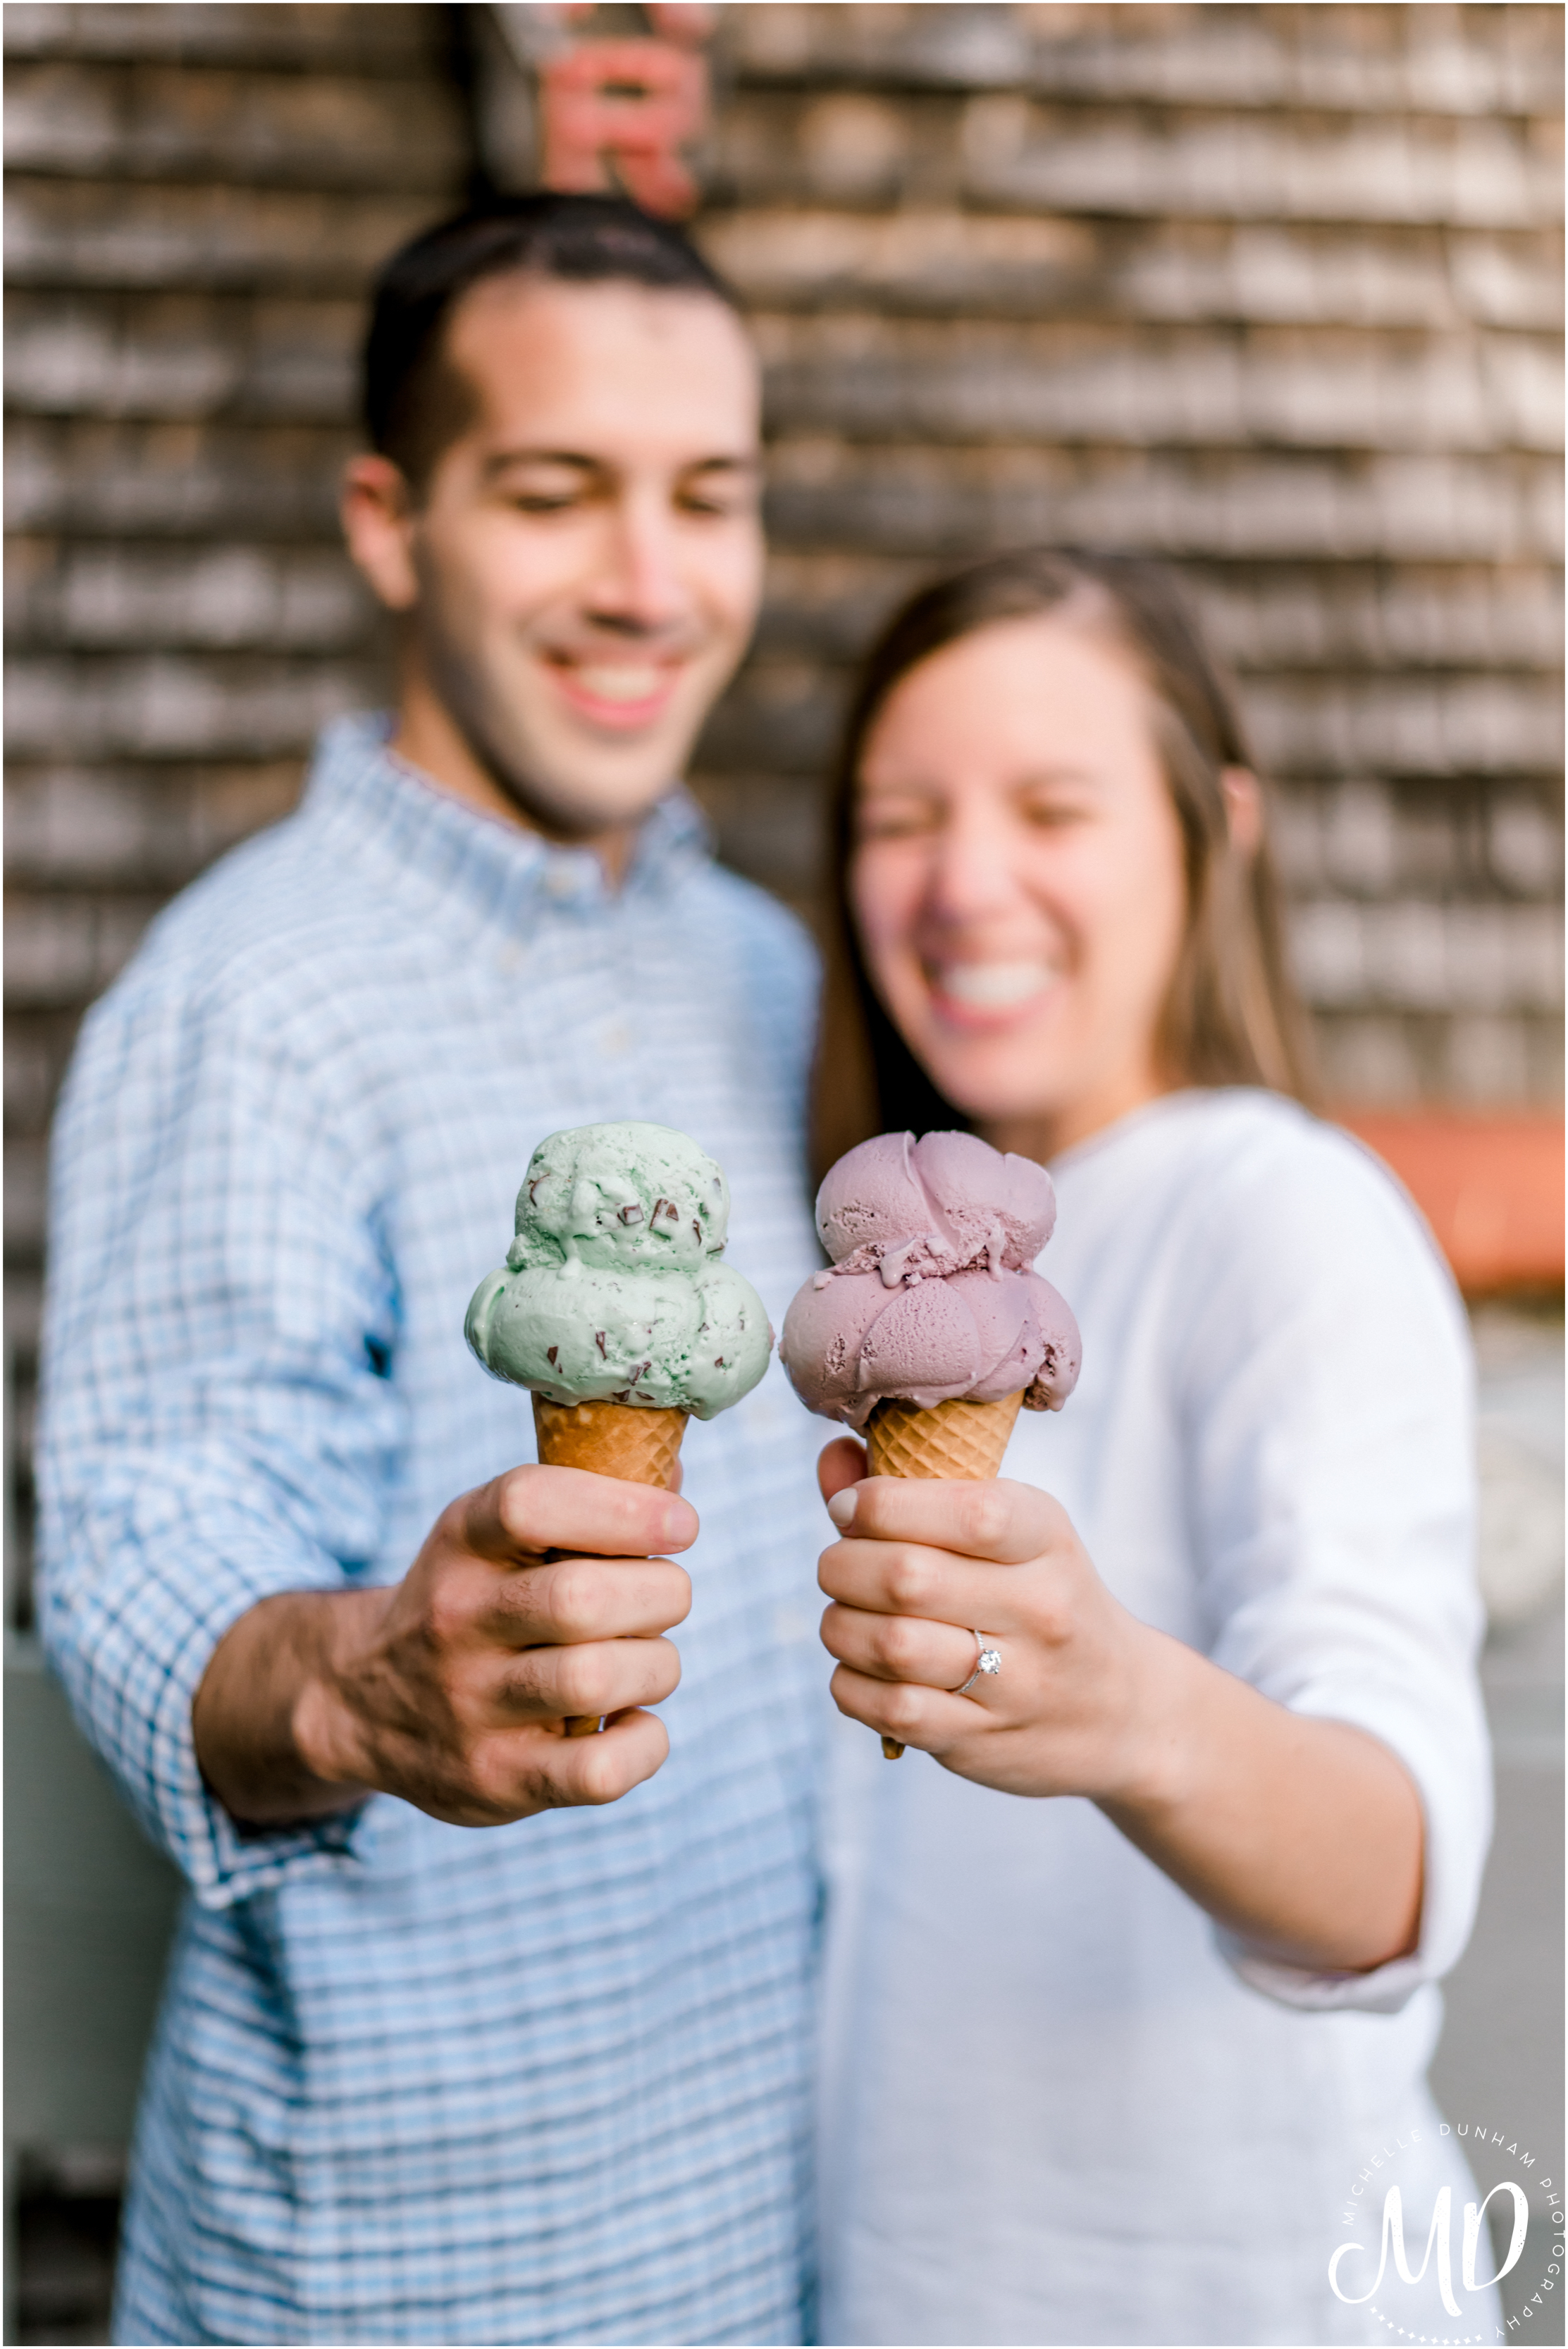 Michelle Dunham Photography-Duxbury-MA-Engagement-FarFars-Ice Cream 6.jpg